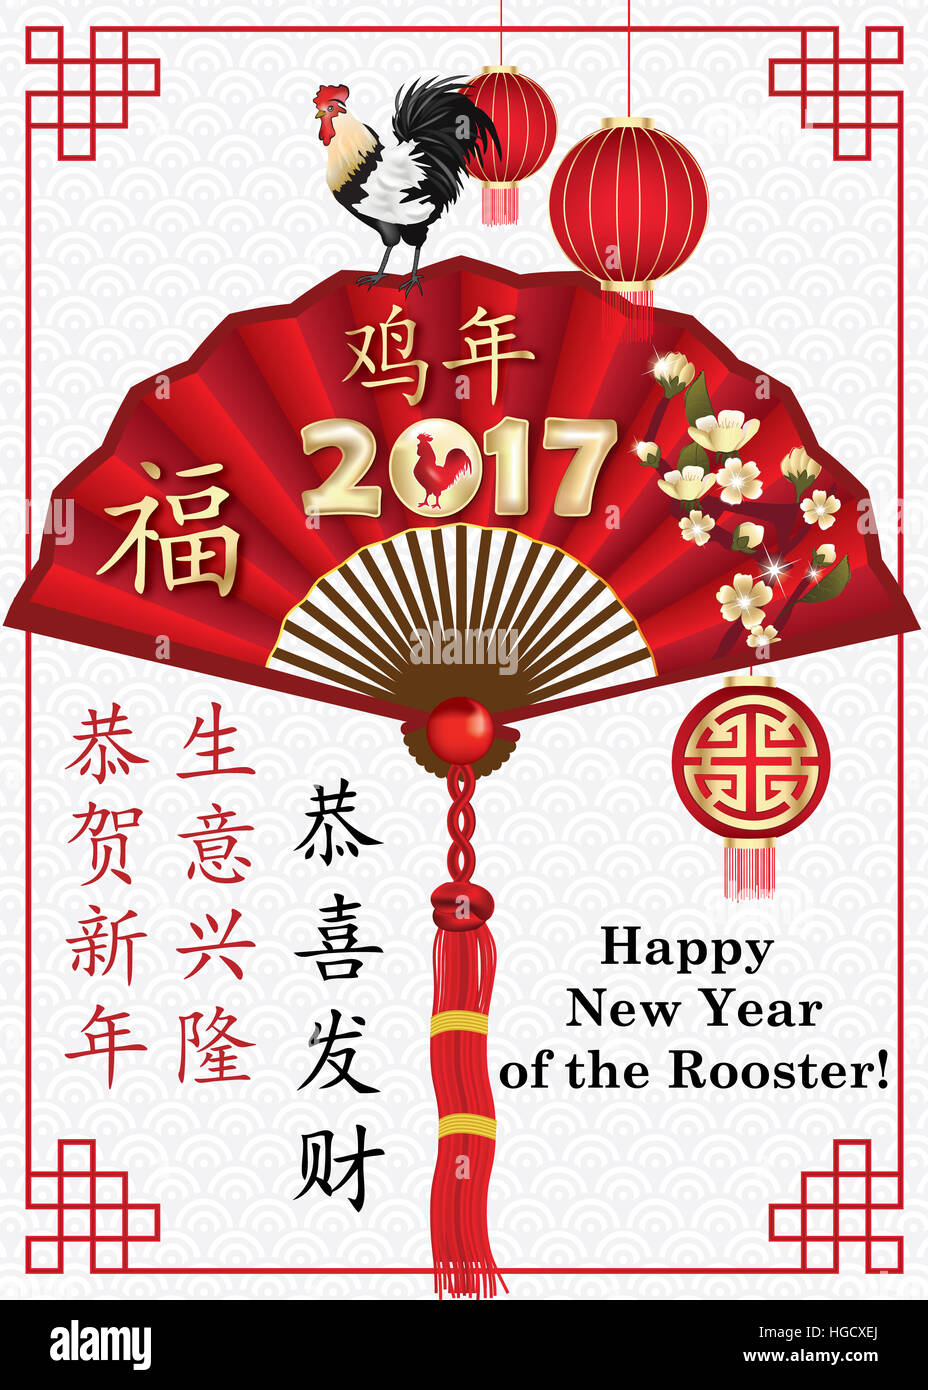 business printable chinese new year of rooster 2017 printable greeting card chinese characters gong xi fa cai